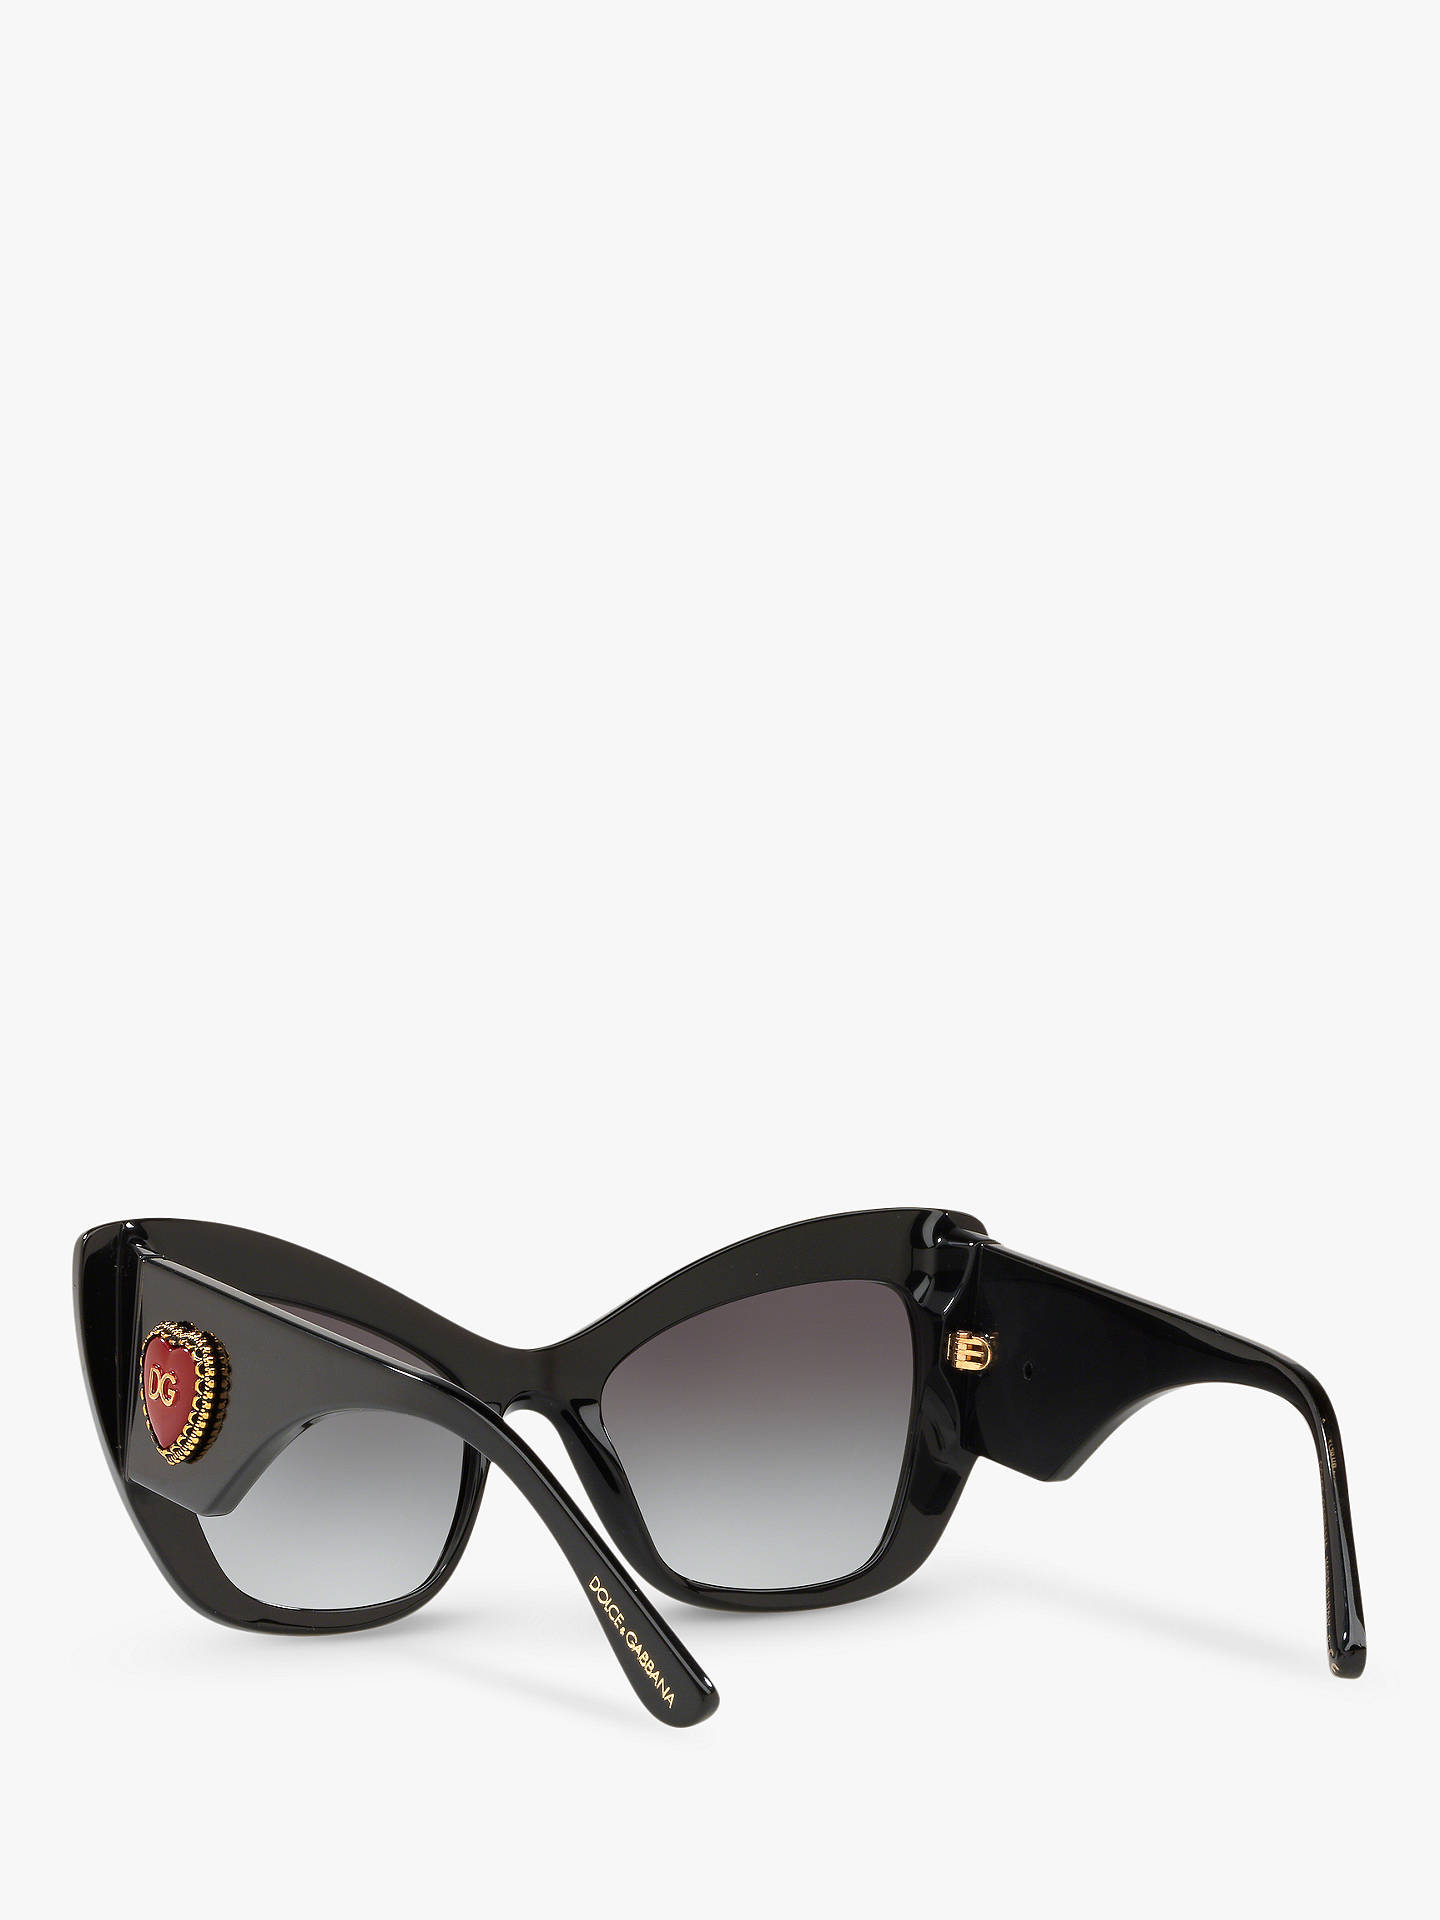 1b59864eb280a Dolce   Gabbana DG4349 Women s Cat s Eye Sunglasses at John Lewis ...